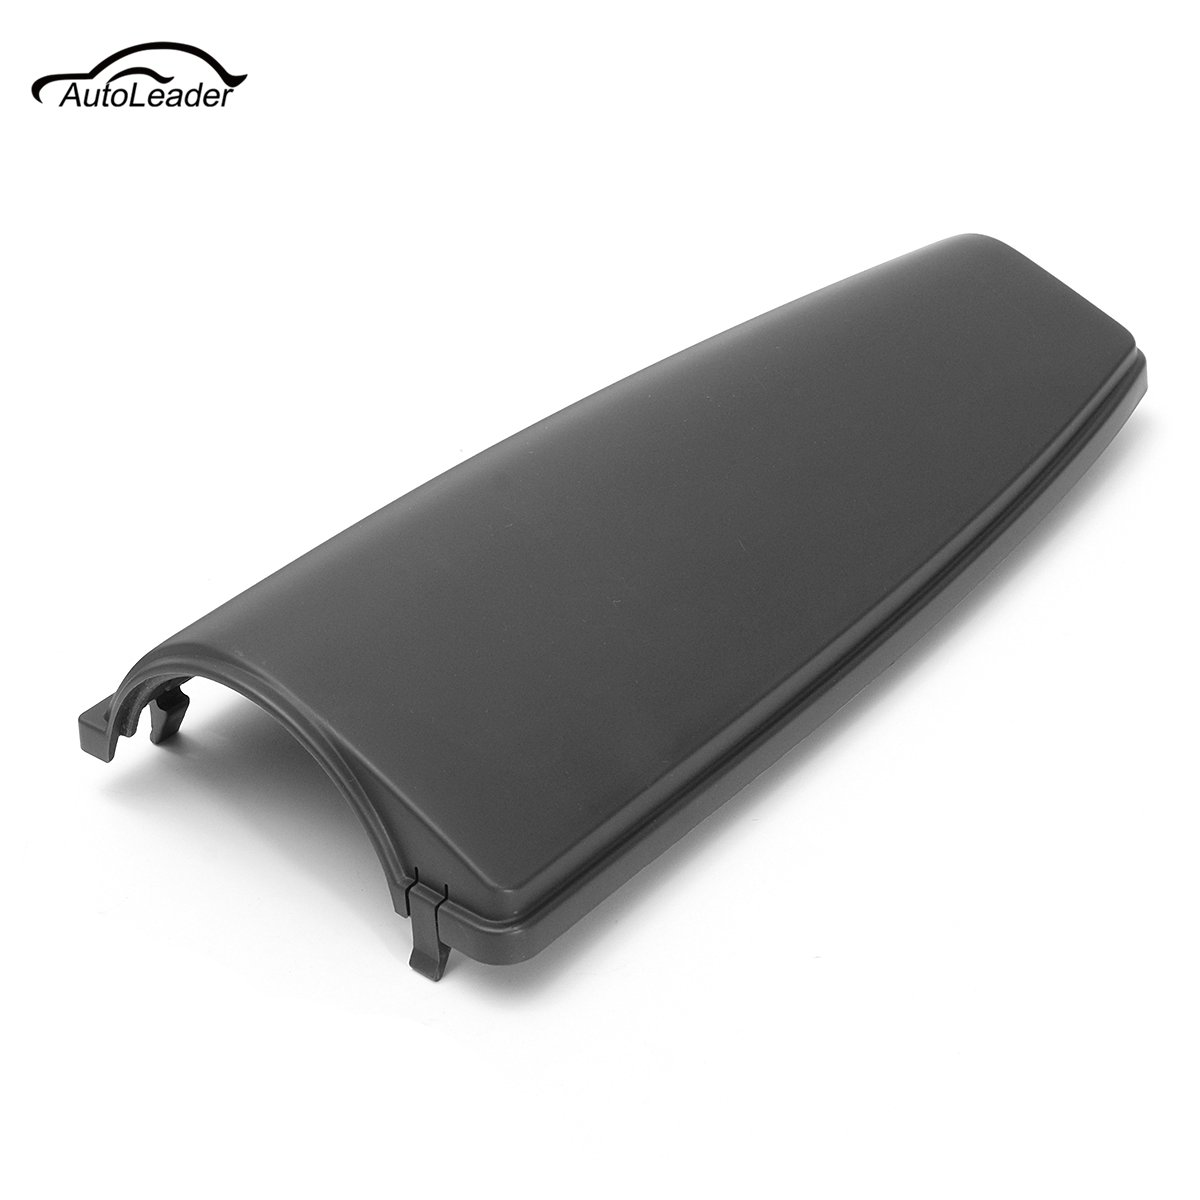 Black Air Intake Duct Cover Lid For VW For Golf For Jetta MK5 MK6 For Passat B6 B7 For Tiguan For Audi A3 TT For Seat For Skoda image